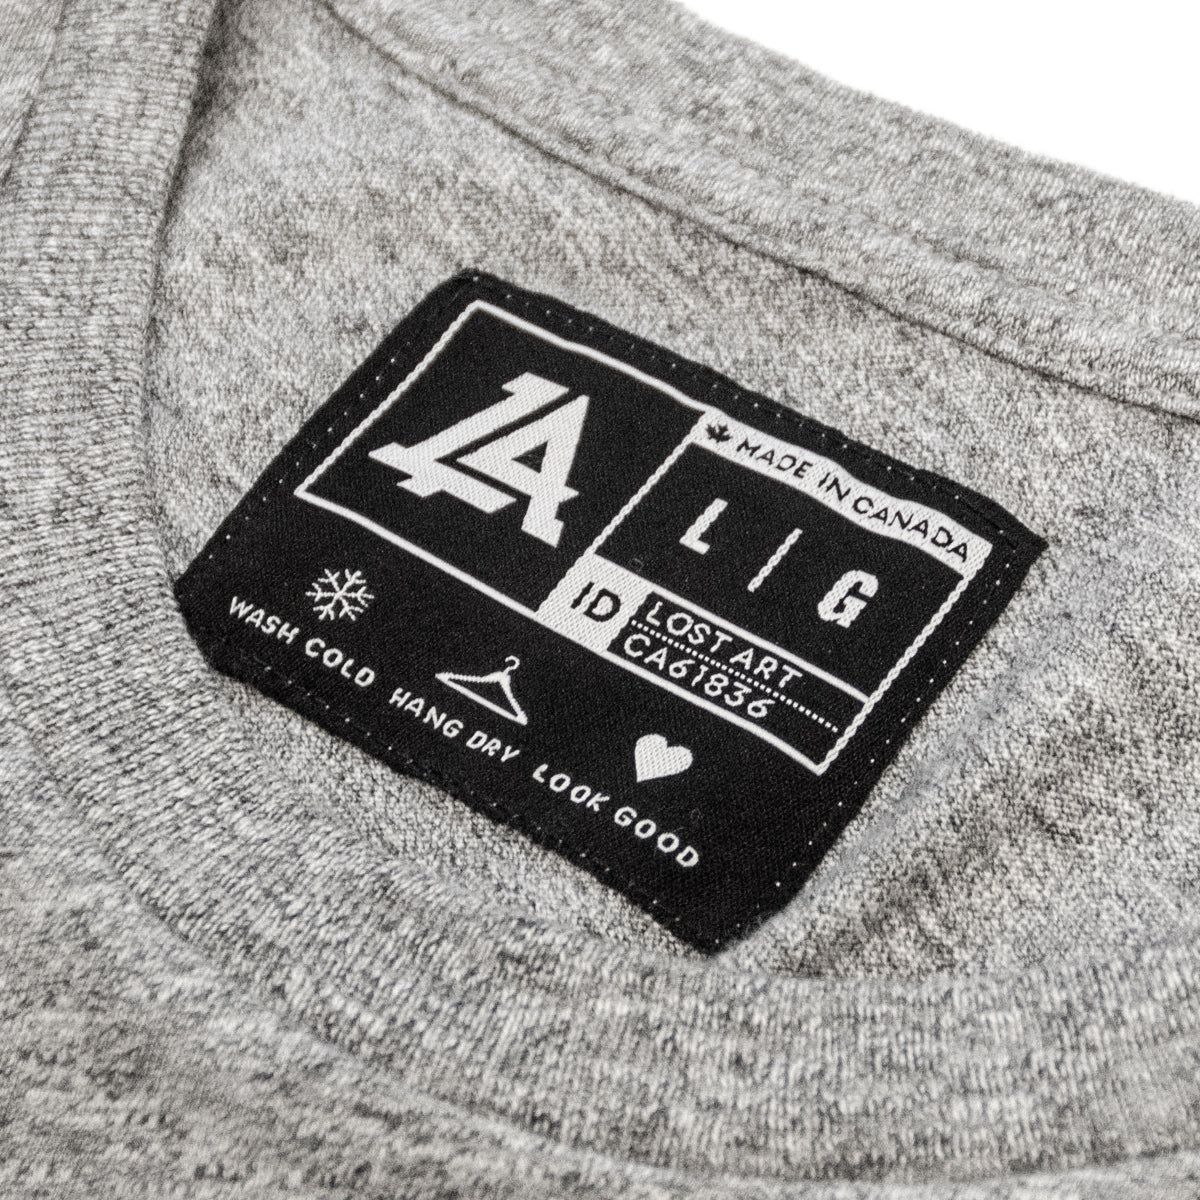 Lost Art Canada - white on grey vintage gridlock tee inside tag view